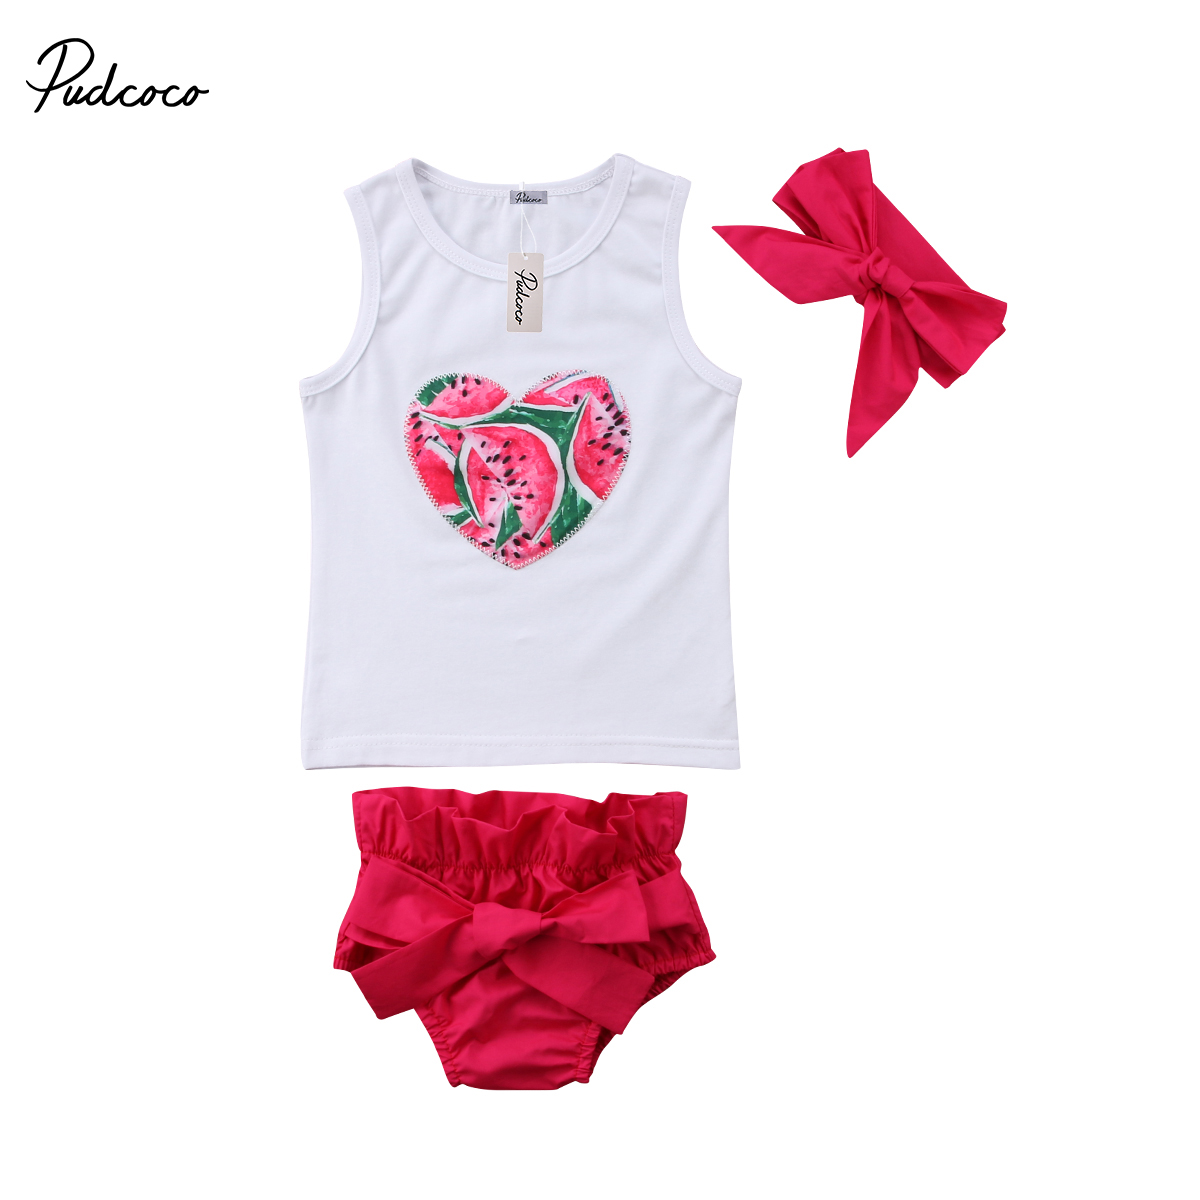 3Pcs Baby Kids Girl Lovely Clothes Set Watermelon Heart Sleeveless Vest Cute Red Belt -8058